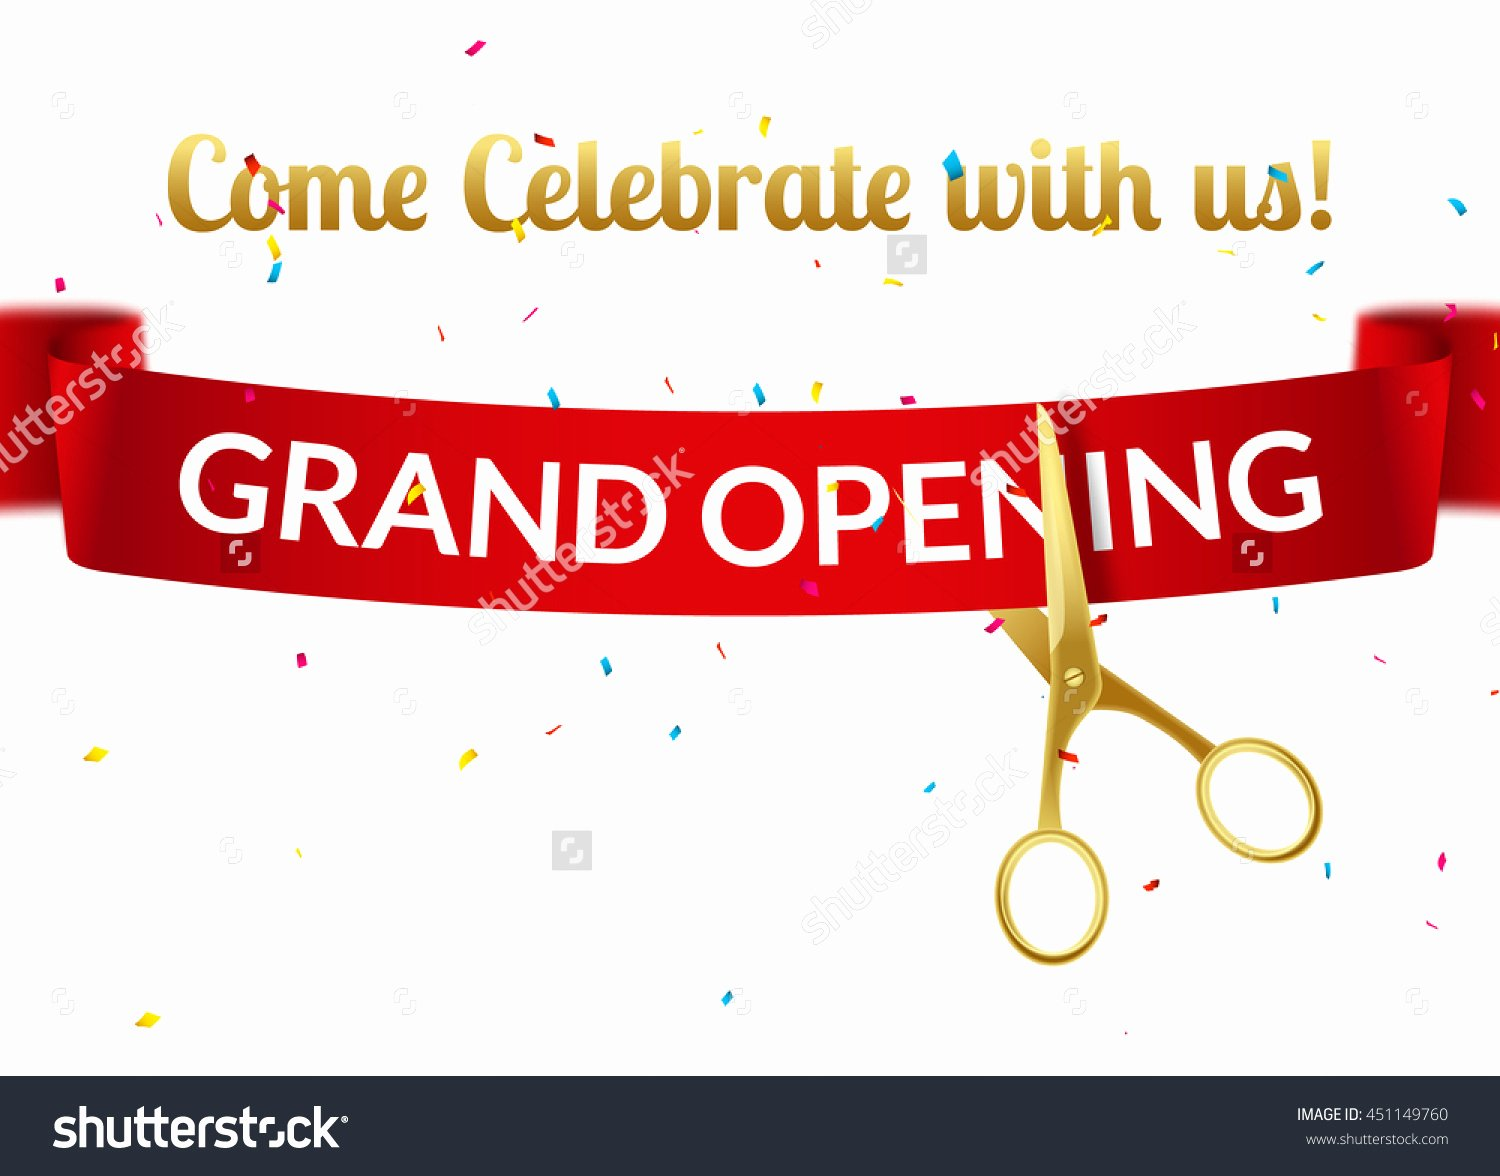 Grand Opening Invitation Template Free Awesome Grand Opening Ideas Driverlayer Search Engine